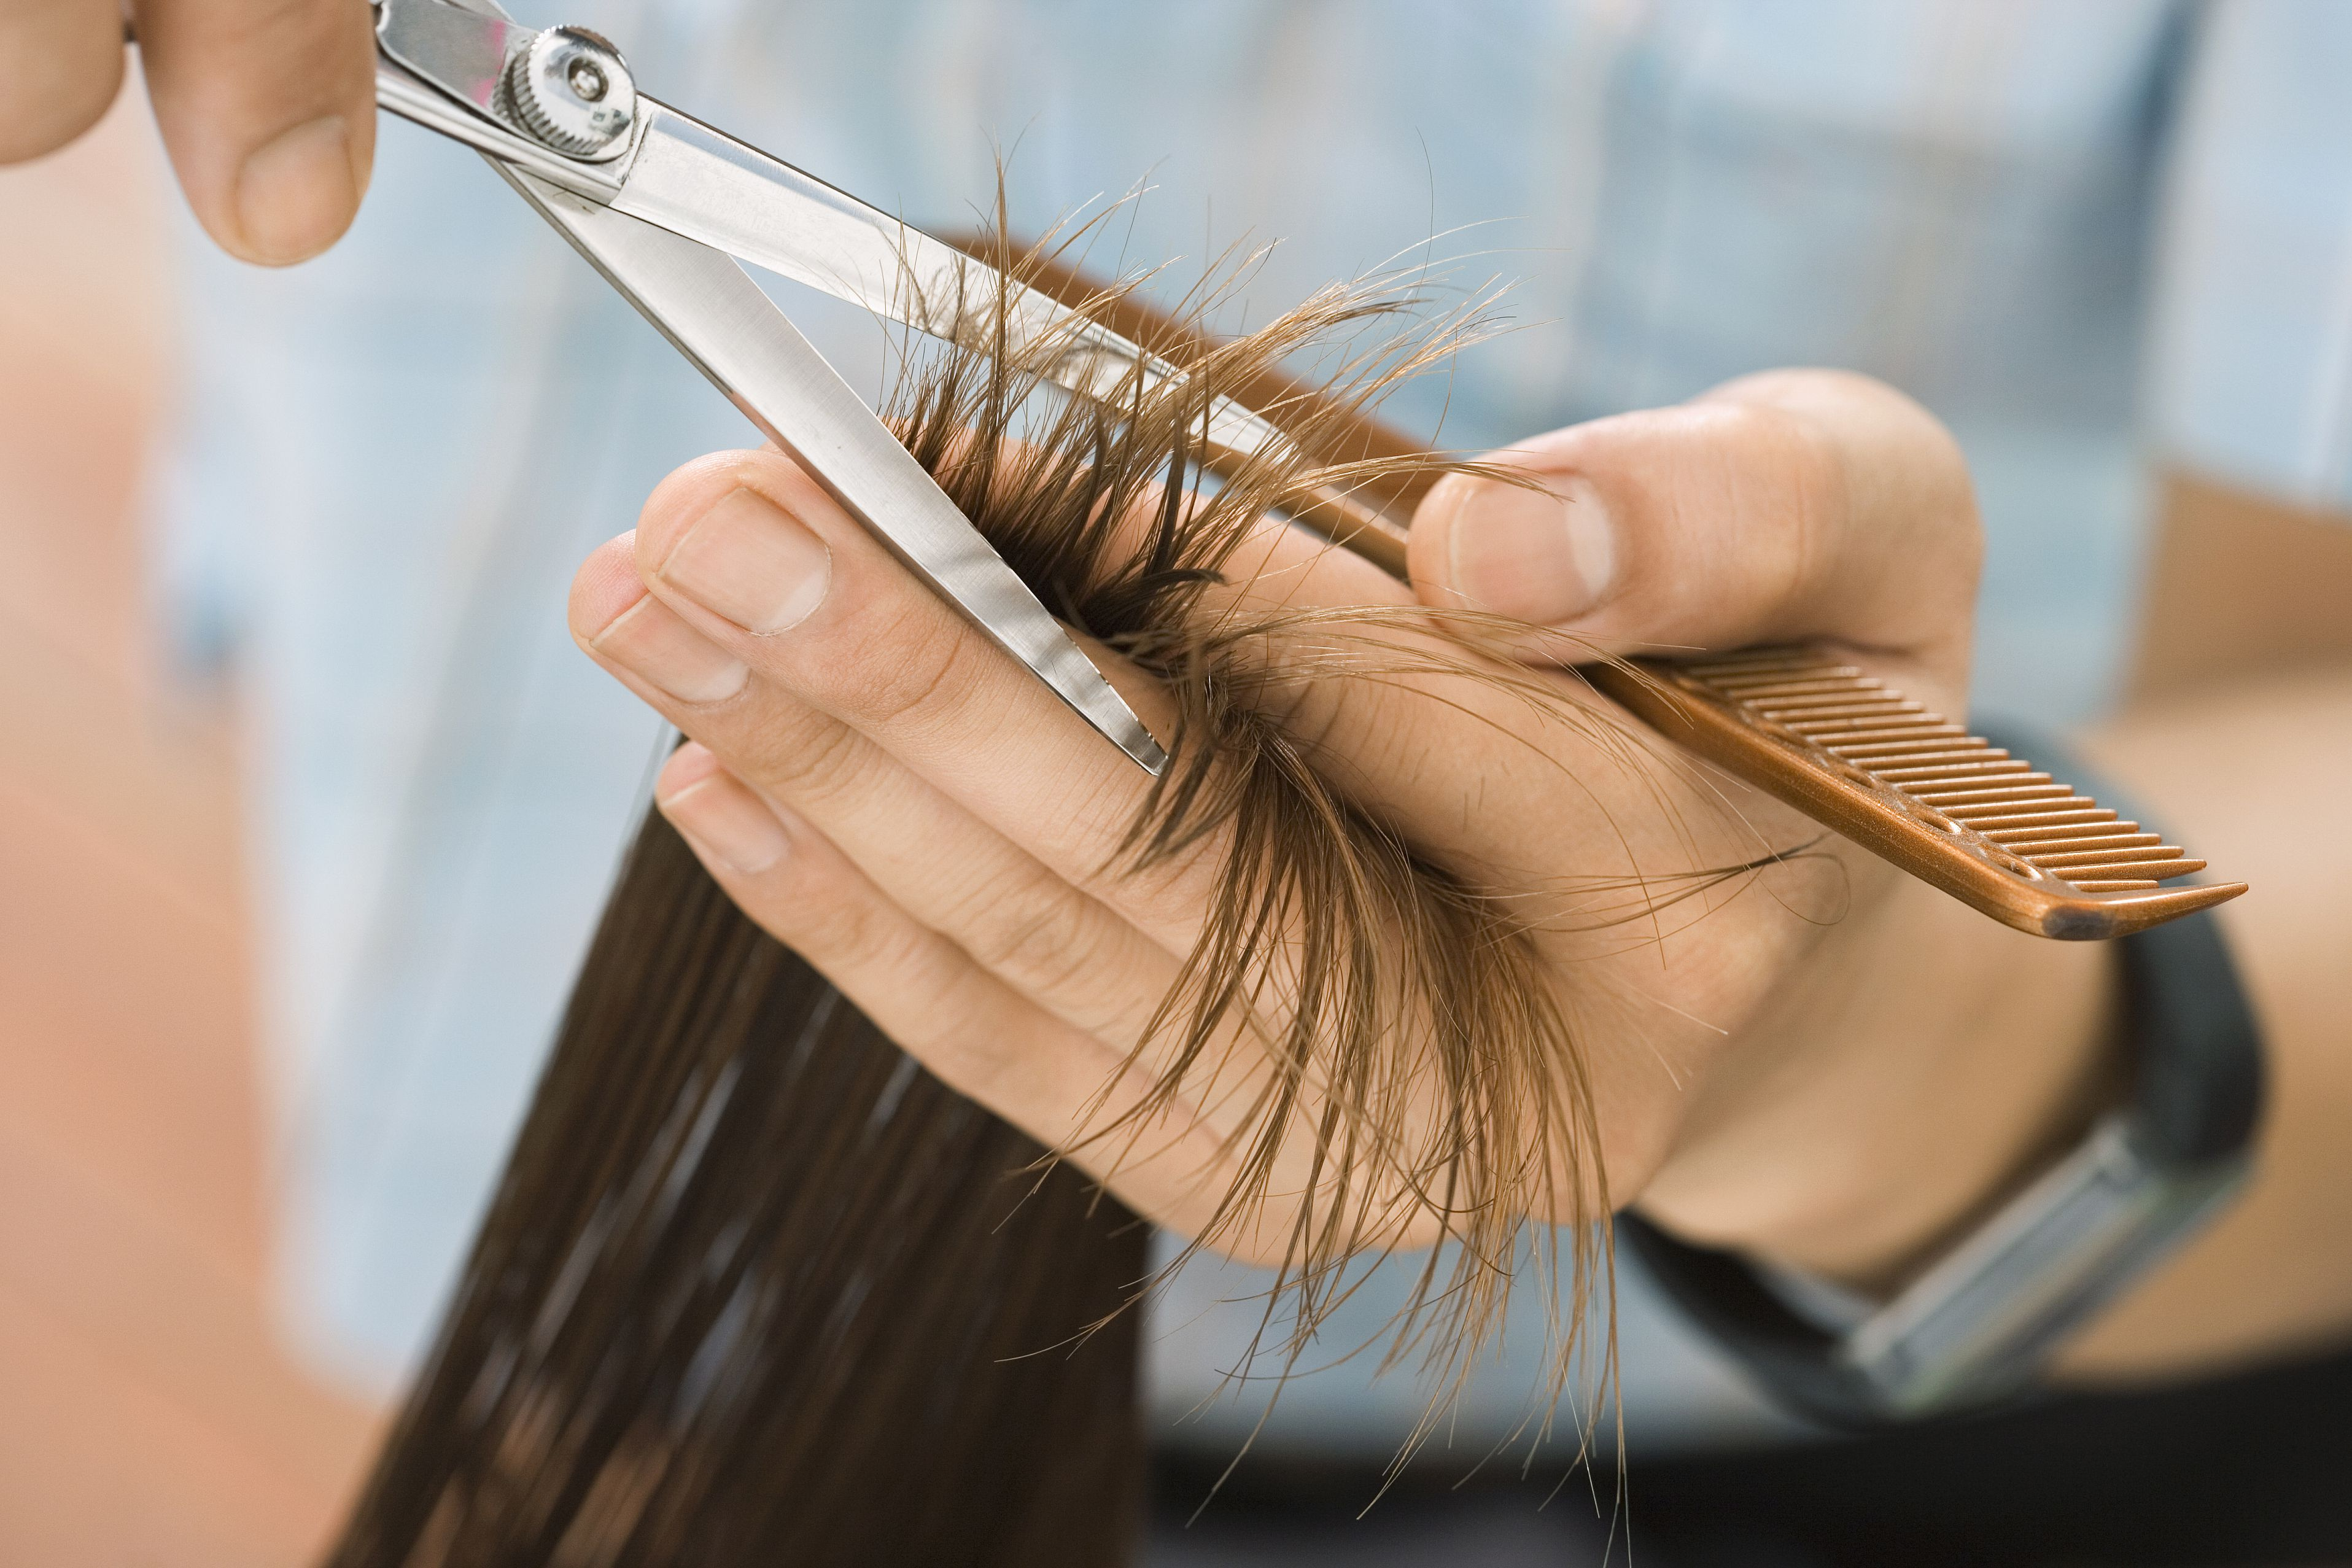 Hairdresser cutting hair in salon, focus on hair, hands and scissors, close-up